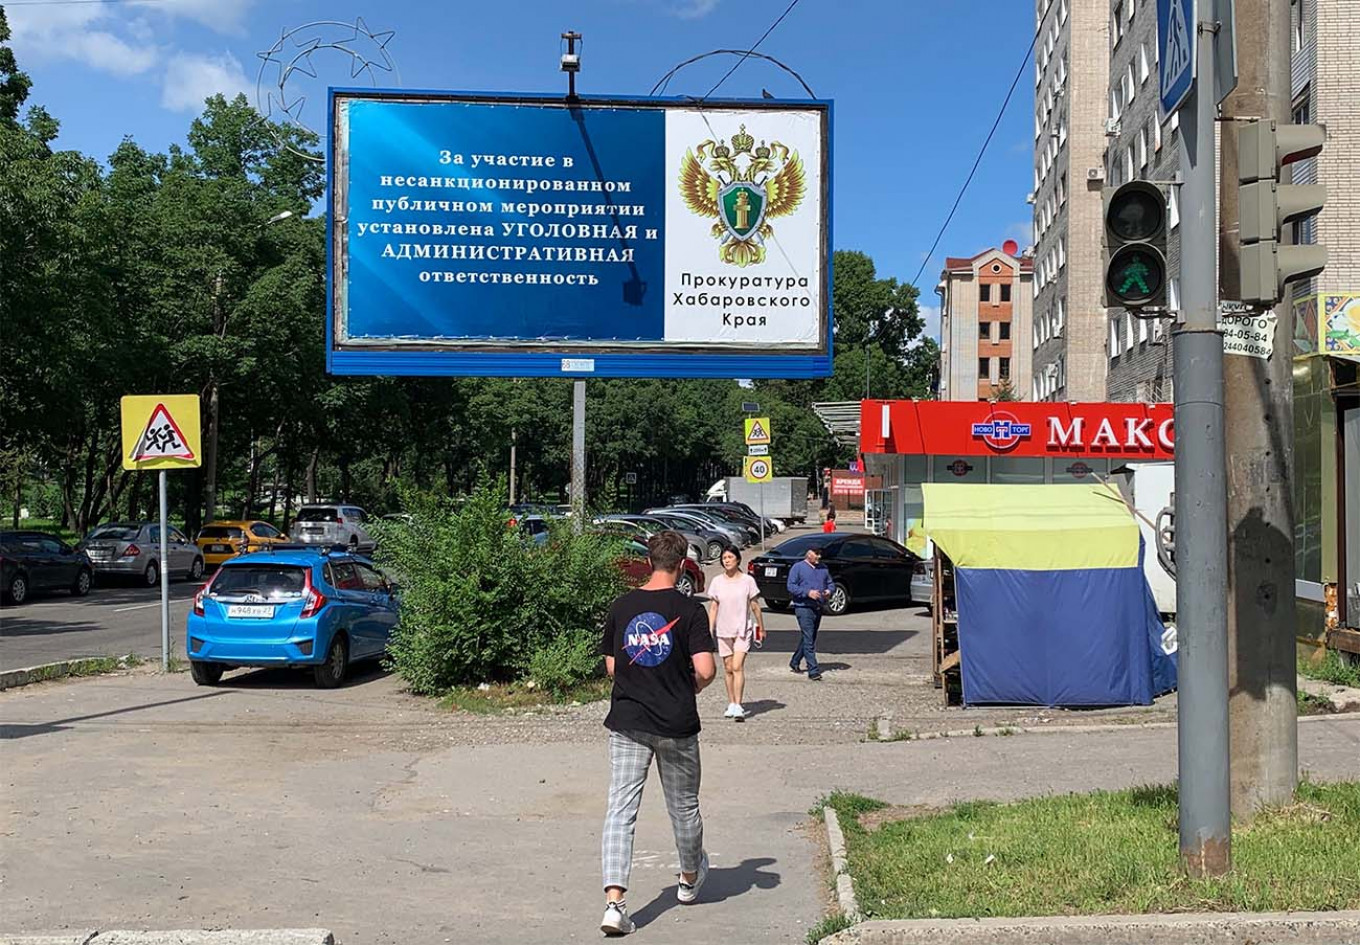 Billboards around the Khabarovsk city center warn residents they could be criminally liable for joining unsanctioned protests. Evan Gershkovich / MT